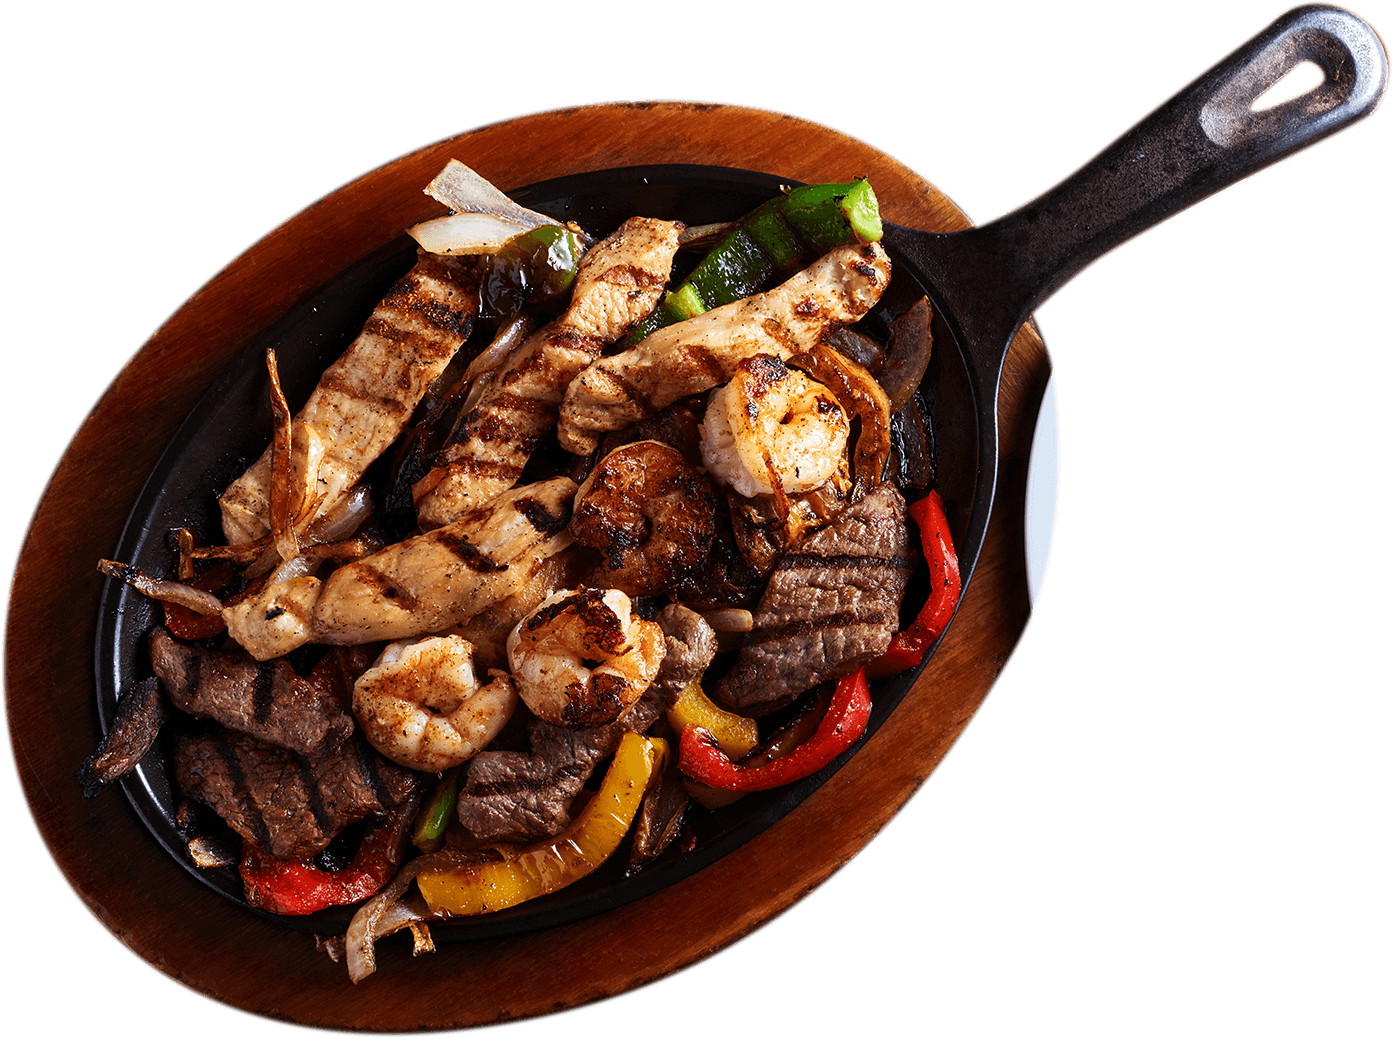 La Carreta's sizzling steak fajitas on a skillet.